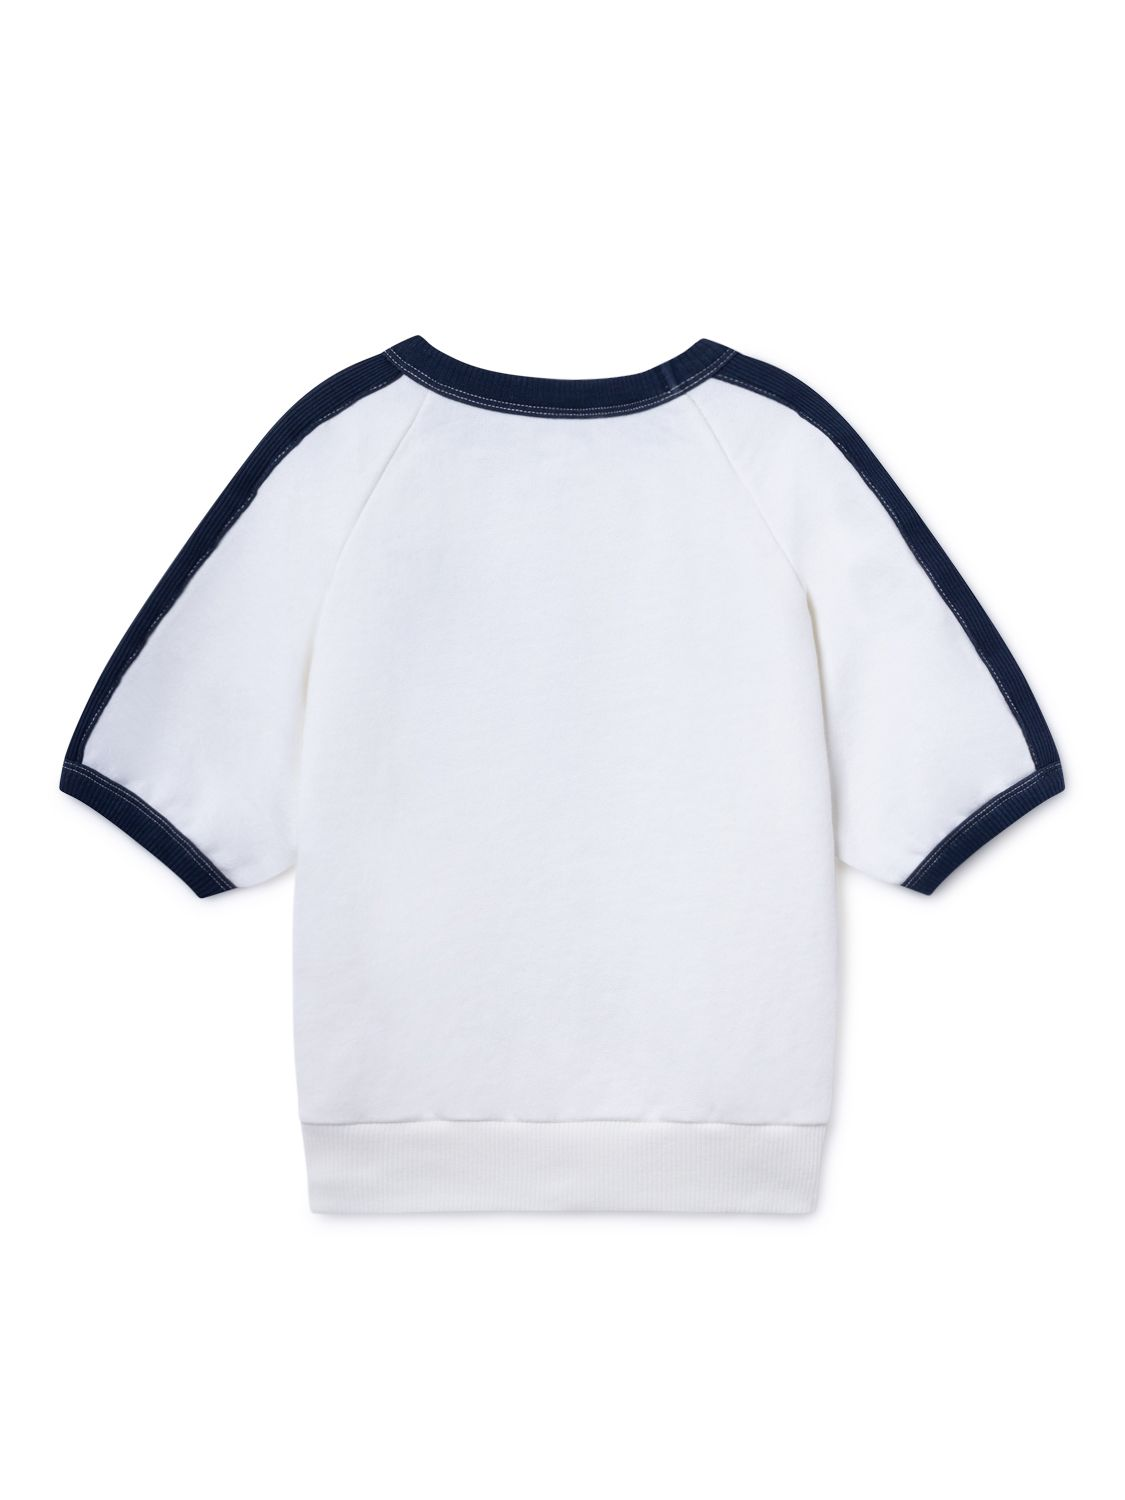 Open 3/4 Sleeve Sweatshirt